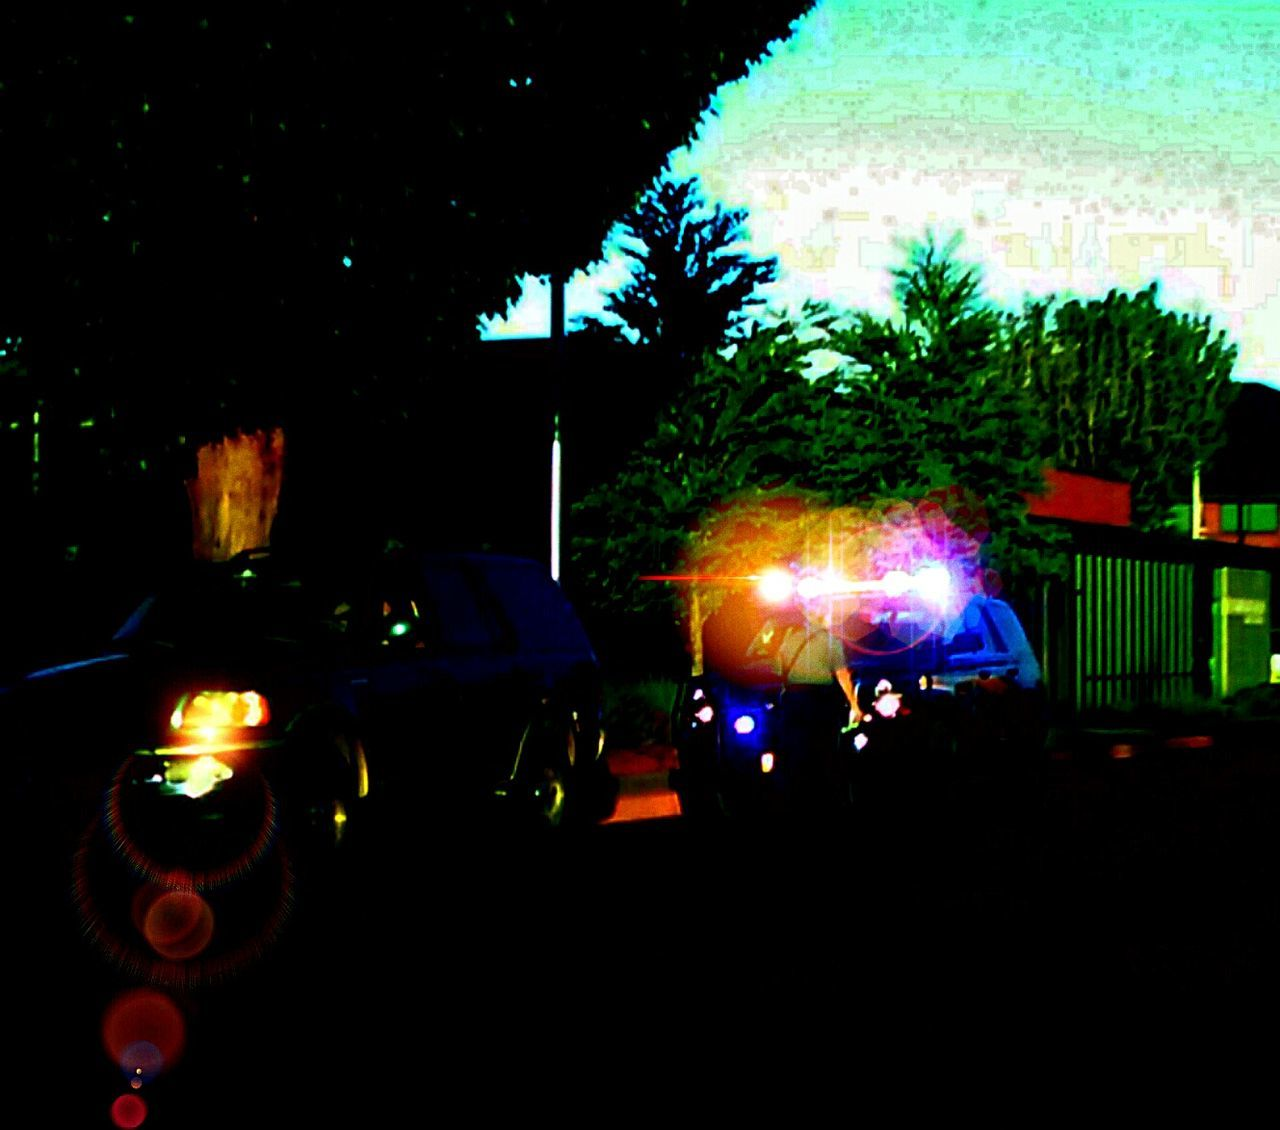 The Great Outdoors - 2016 EyeEm Awards One Wild Night On The Way Fine Art Photography Street Photography Uhohhh Bummer Moments Cheese! Cops Slow Down Bad Boys Pullover Coming For Ya Weeeeoooooo All Lives Matter Super Trooper Arrest